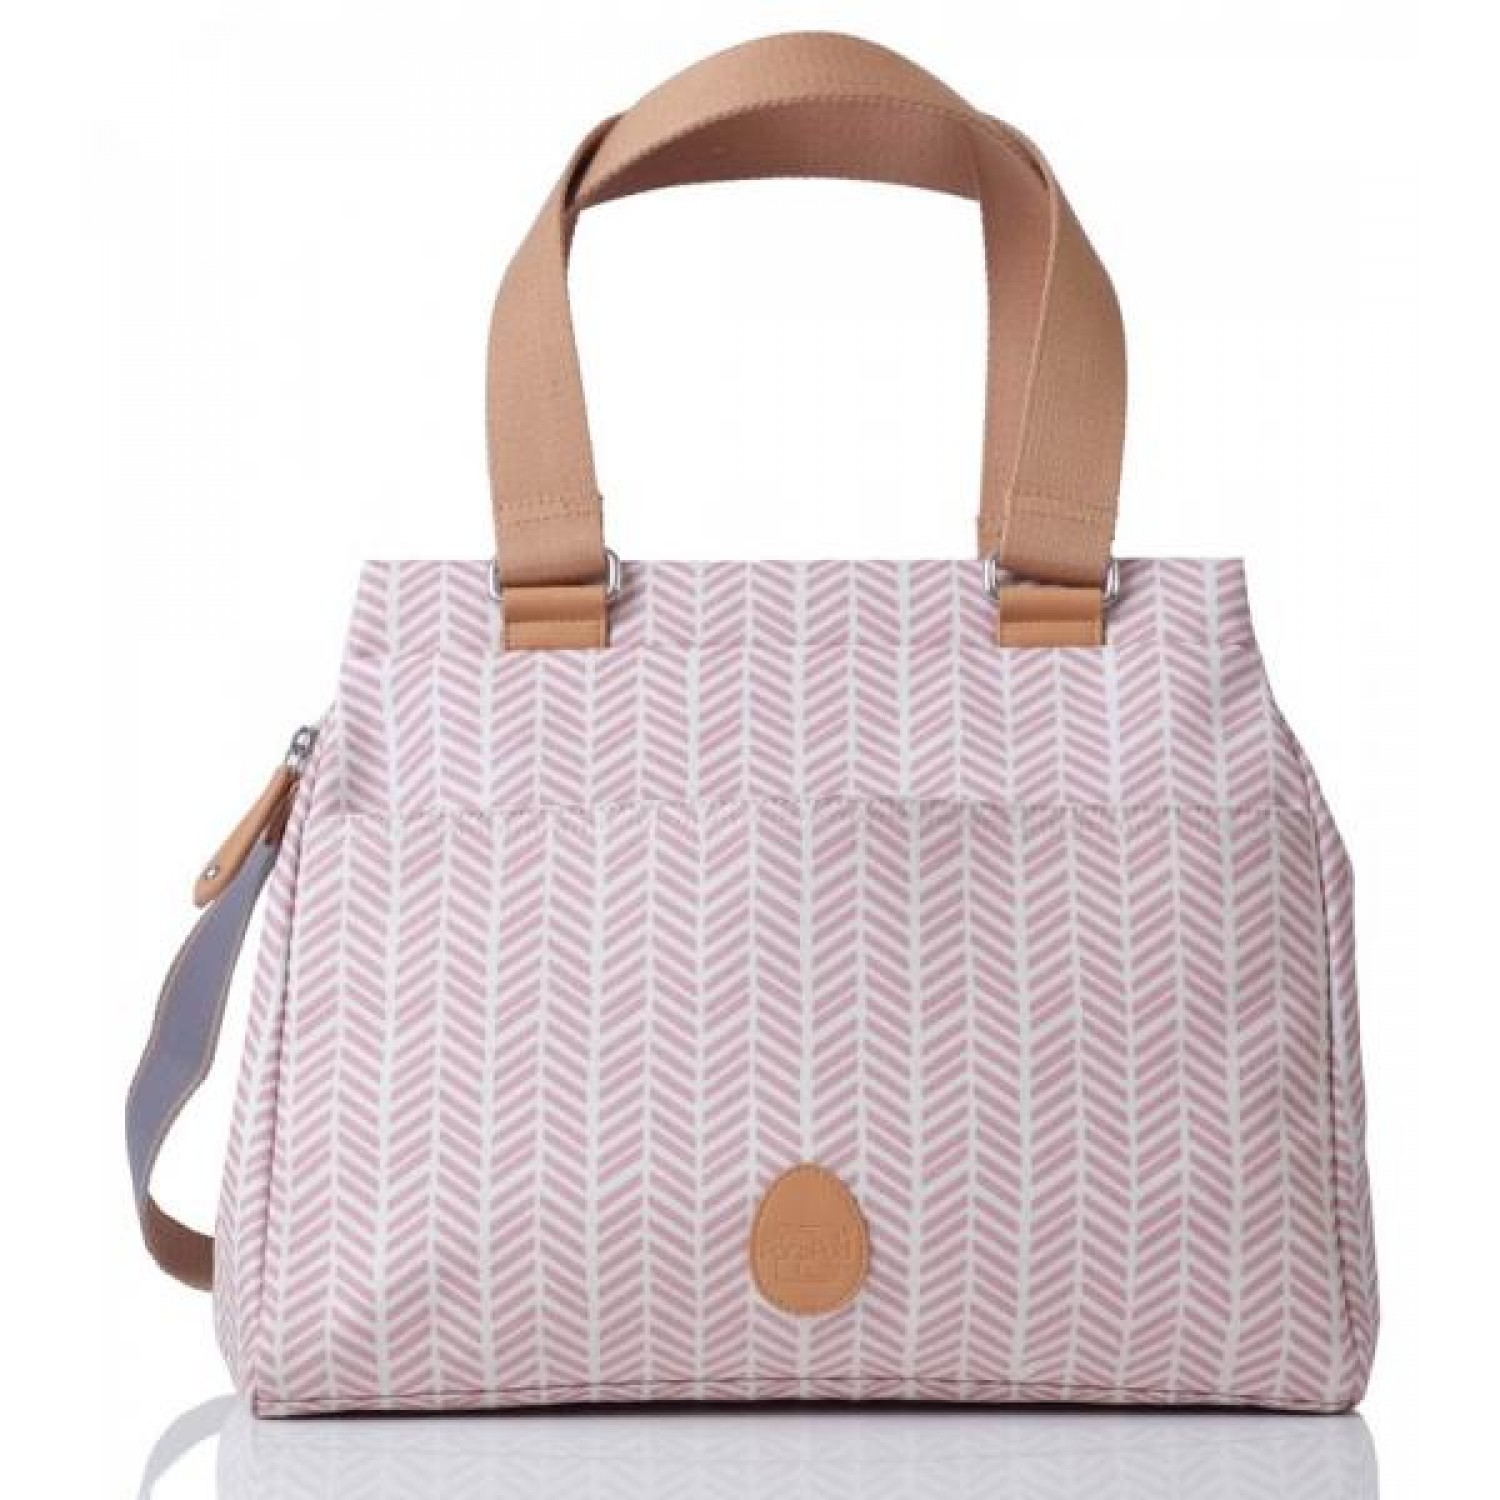 Öko Wickeltasche Richmond Dusty Pink Herringbone | PacaPod